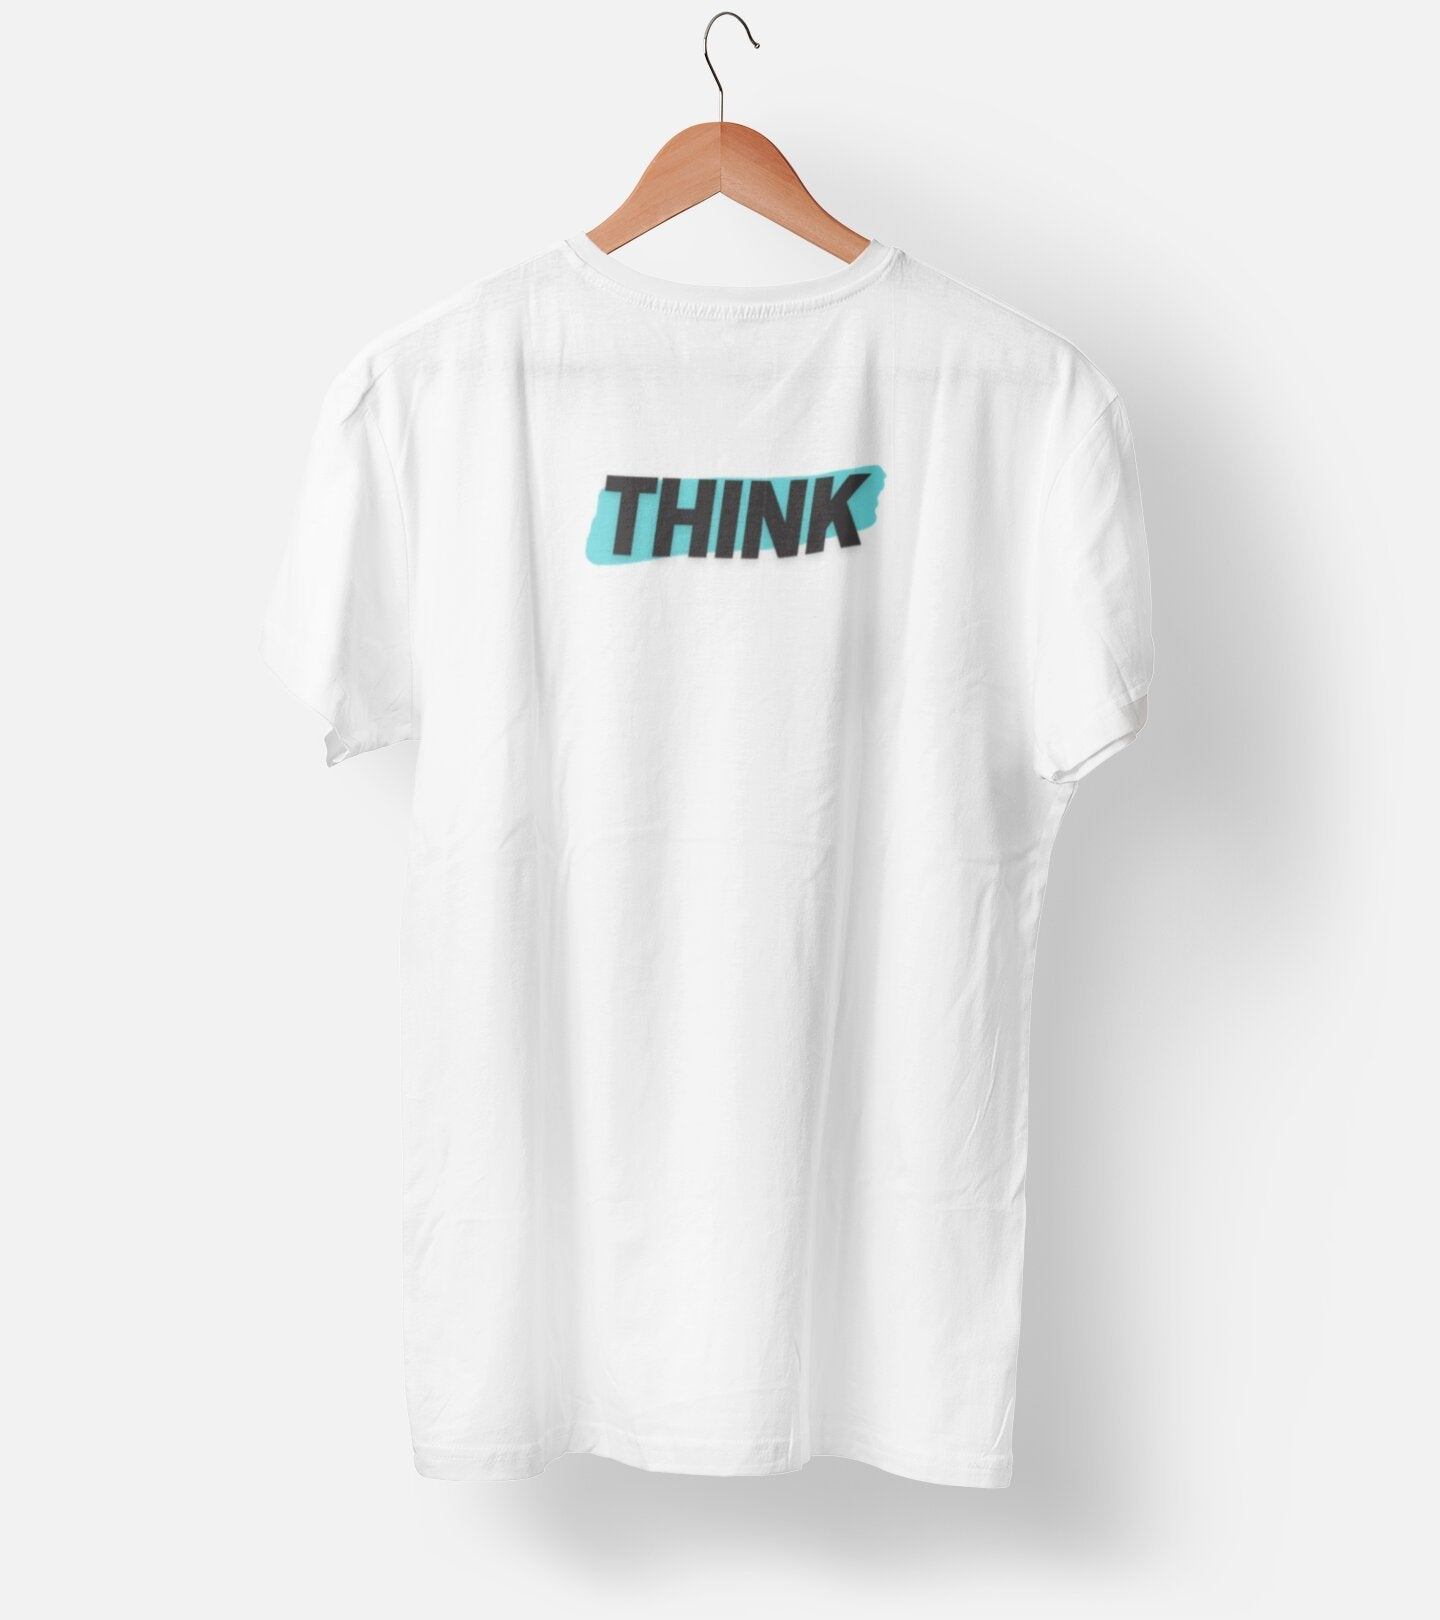 Think Wordwear Men's T-Shirt